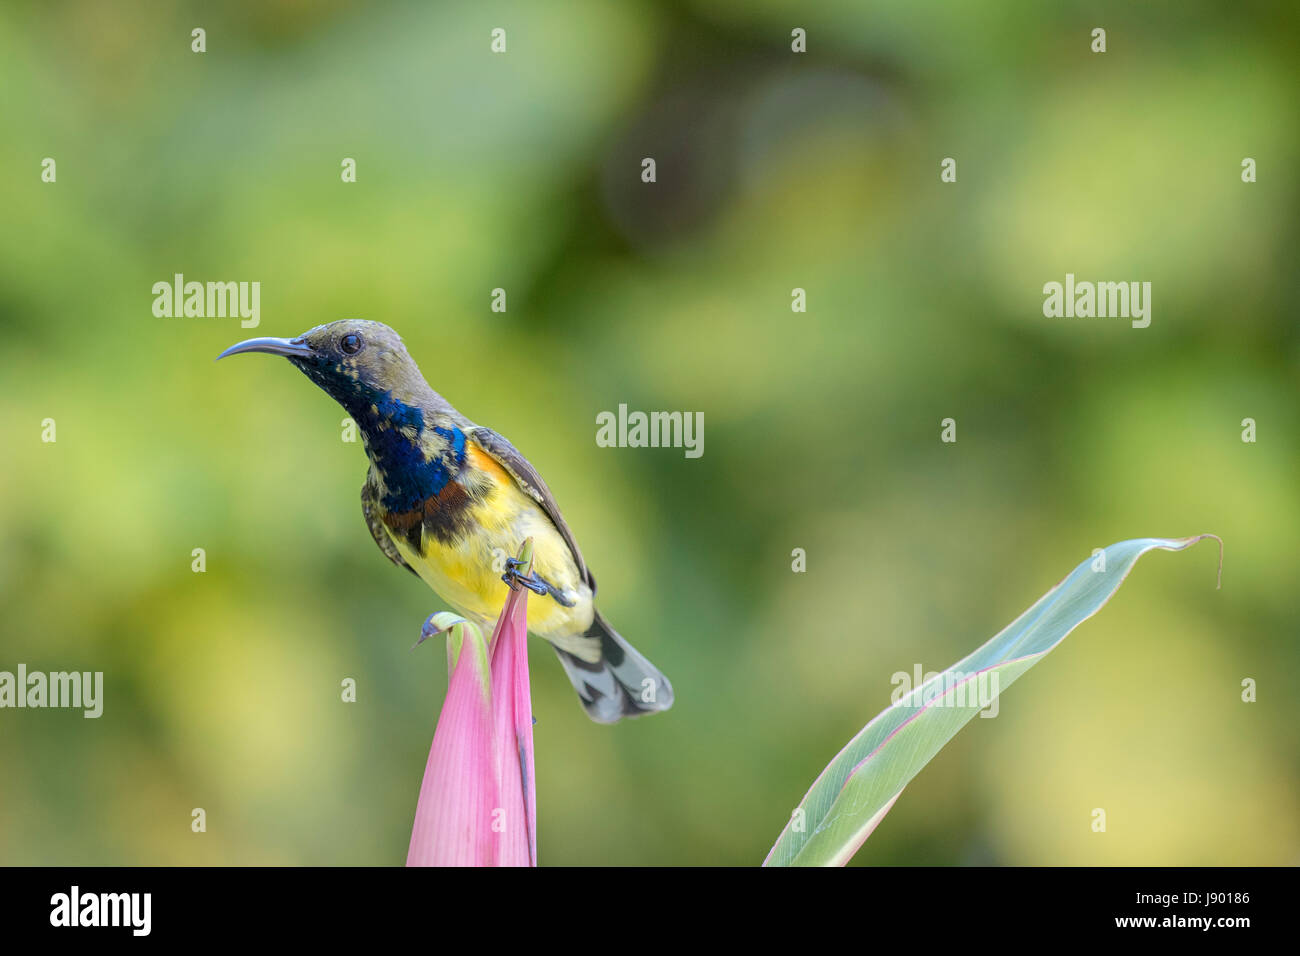 Lone male olive-backed sunbird (Cinnyris jugularis) perching on the pink flower after feeding on nectar in Bangkok, - Stock Image